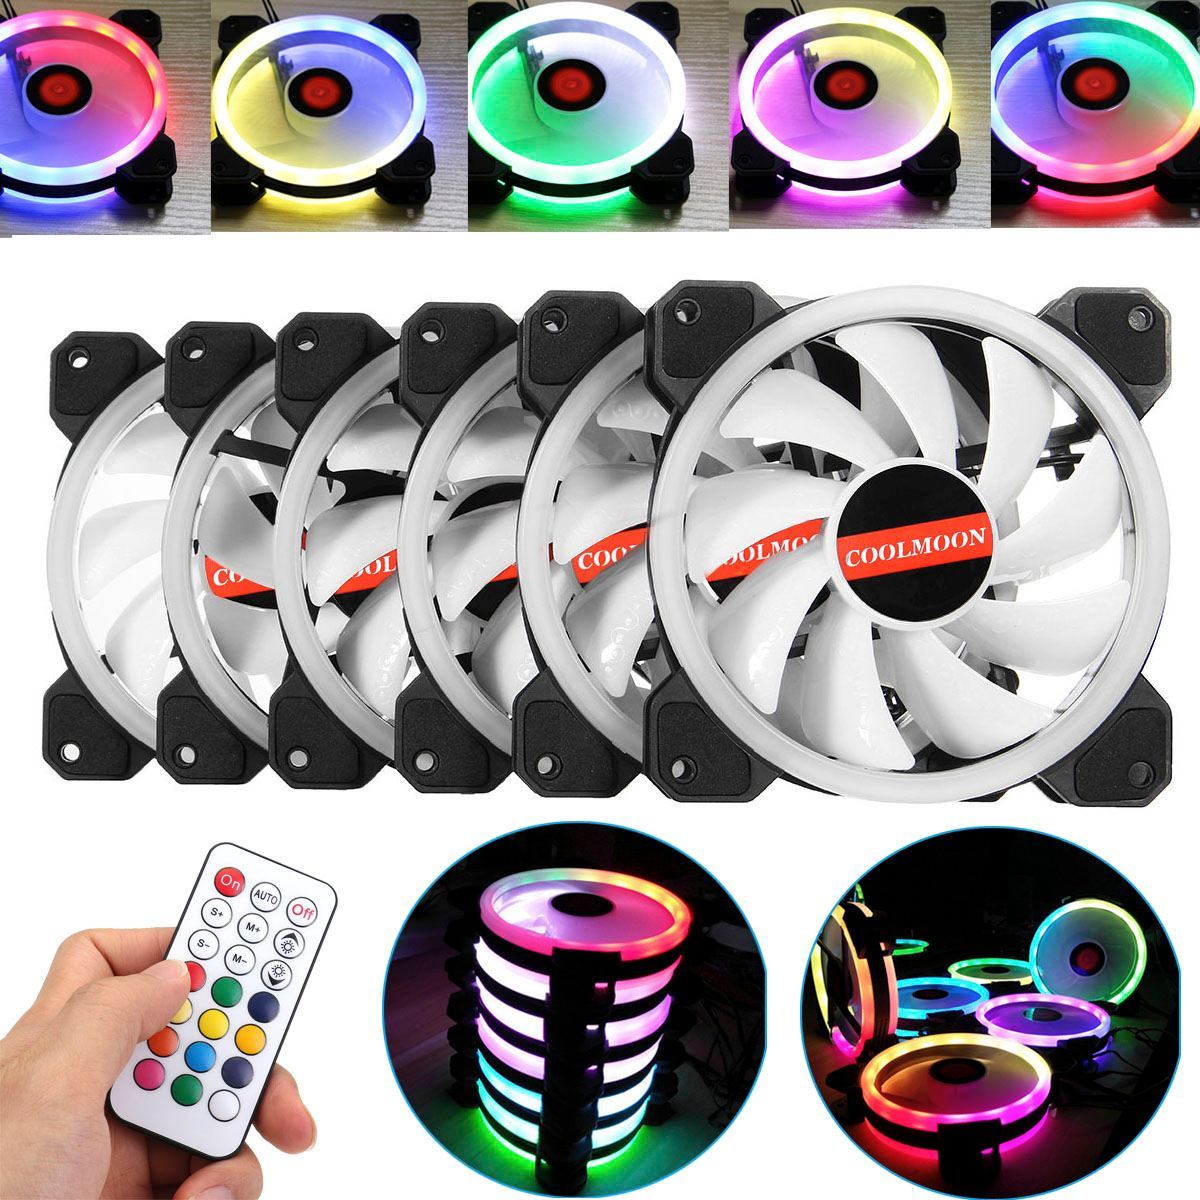 6pcs Computer Case PC Cooling Fan RGB Fan Cooling Adjust LED 120mm Quiet IR Remote Computer Cooler Cooling RGB Case Fan For CPU